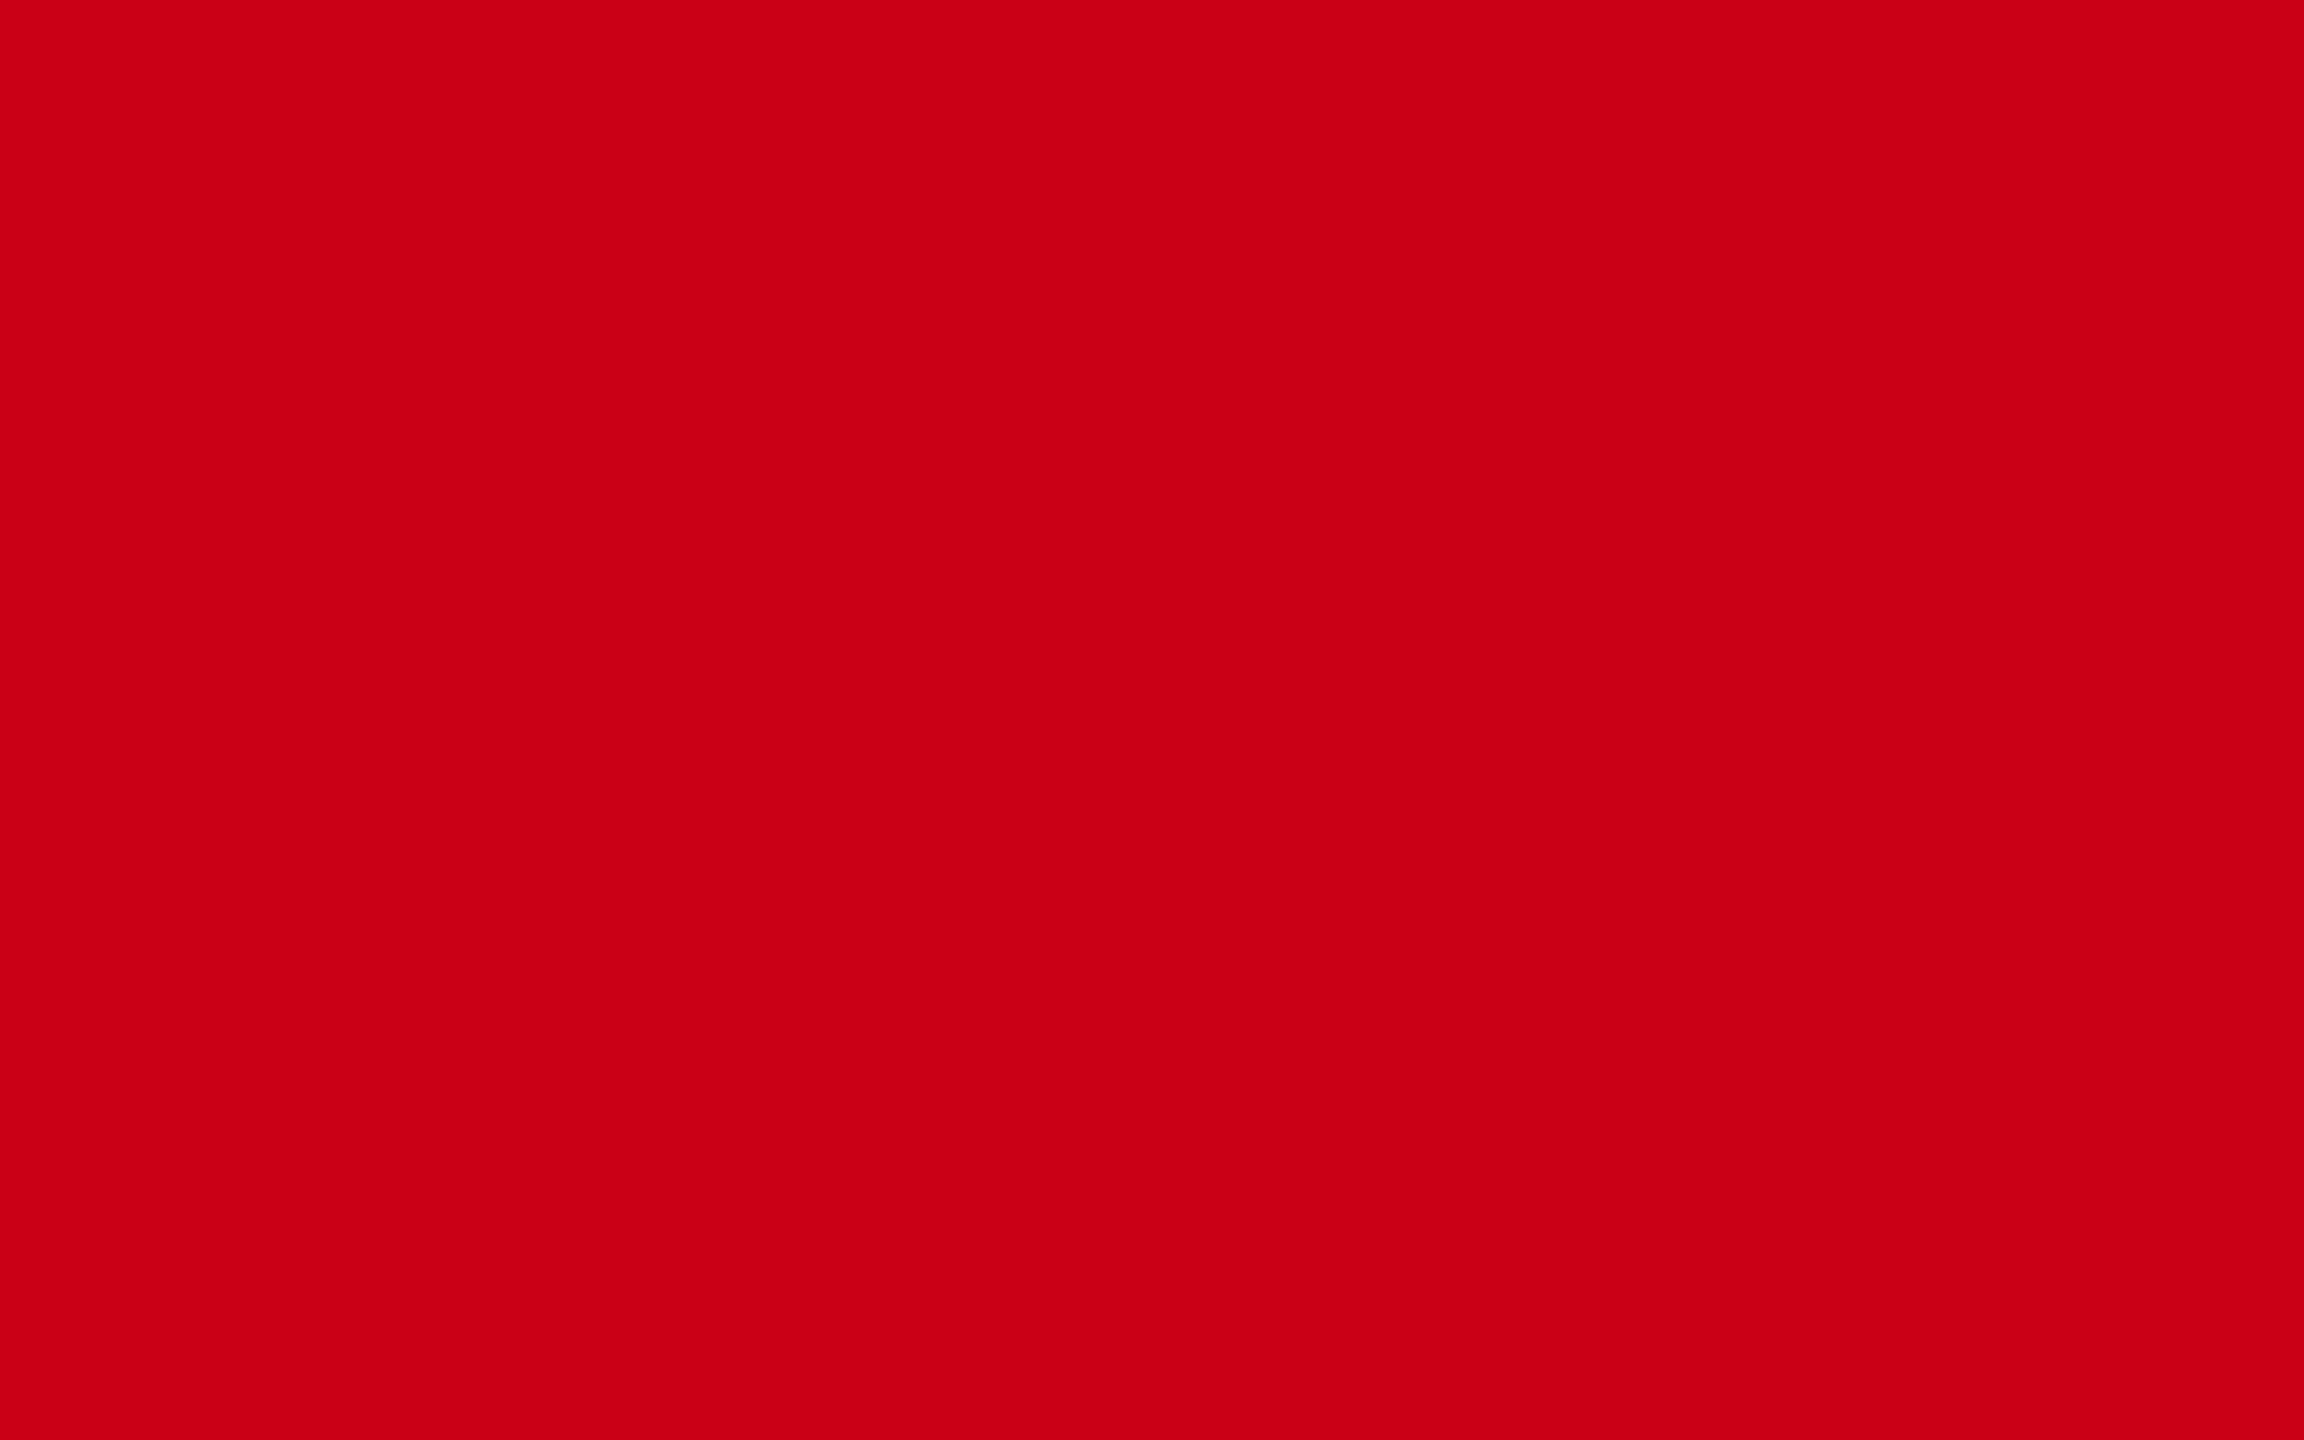 2304x1440 Harvard Crimson Solid Color Background